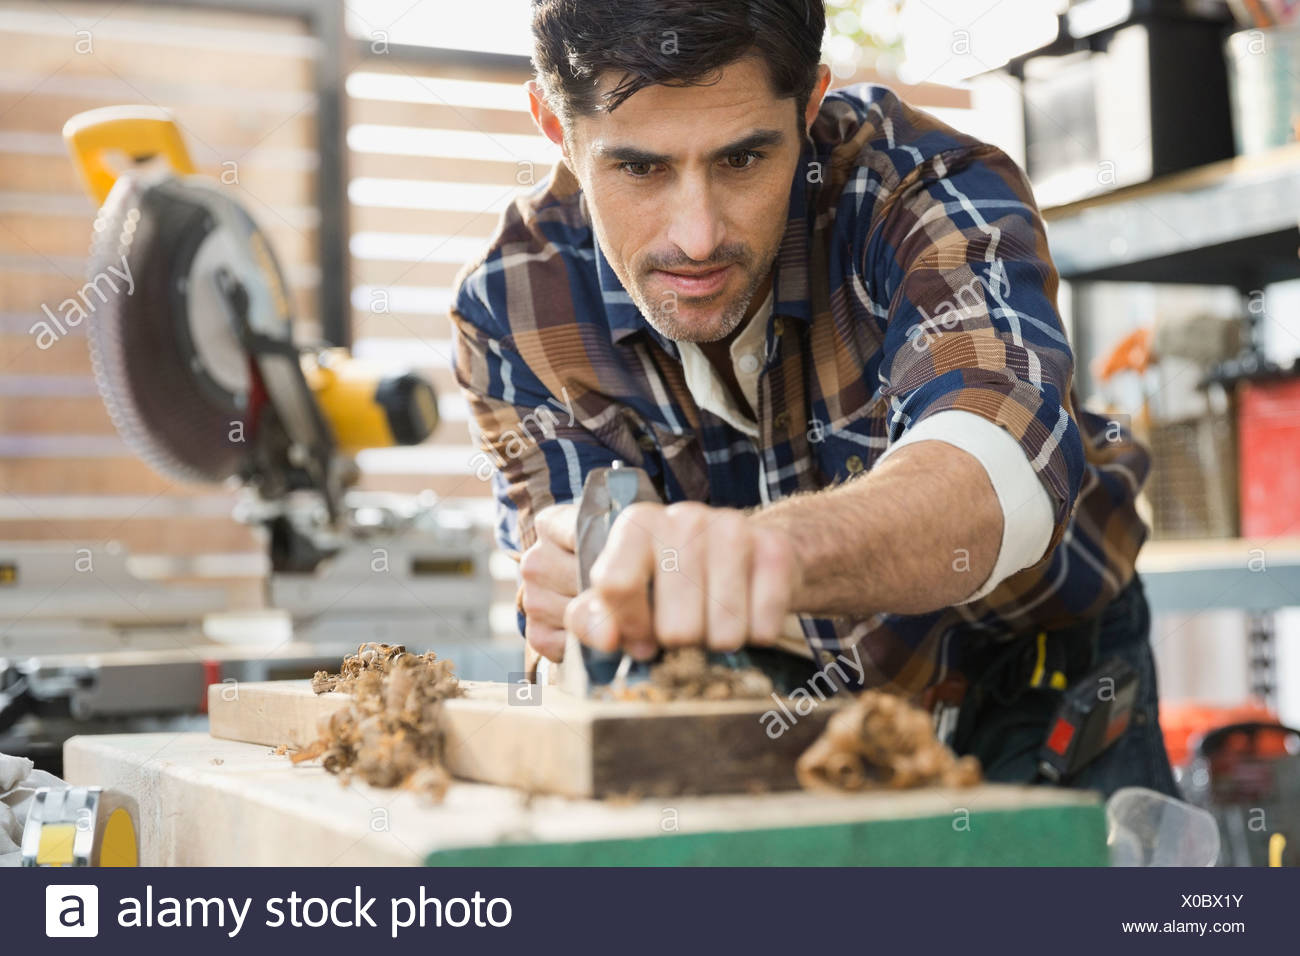 Carpenter smoothing wood with plane in workshop - Stock Image